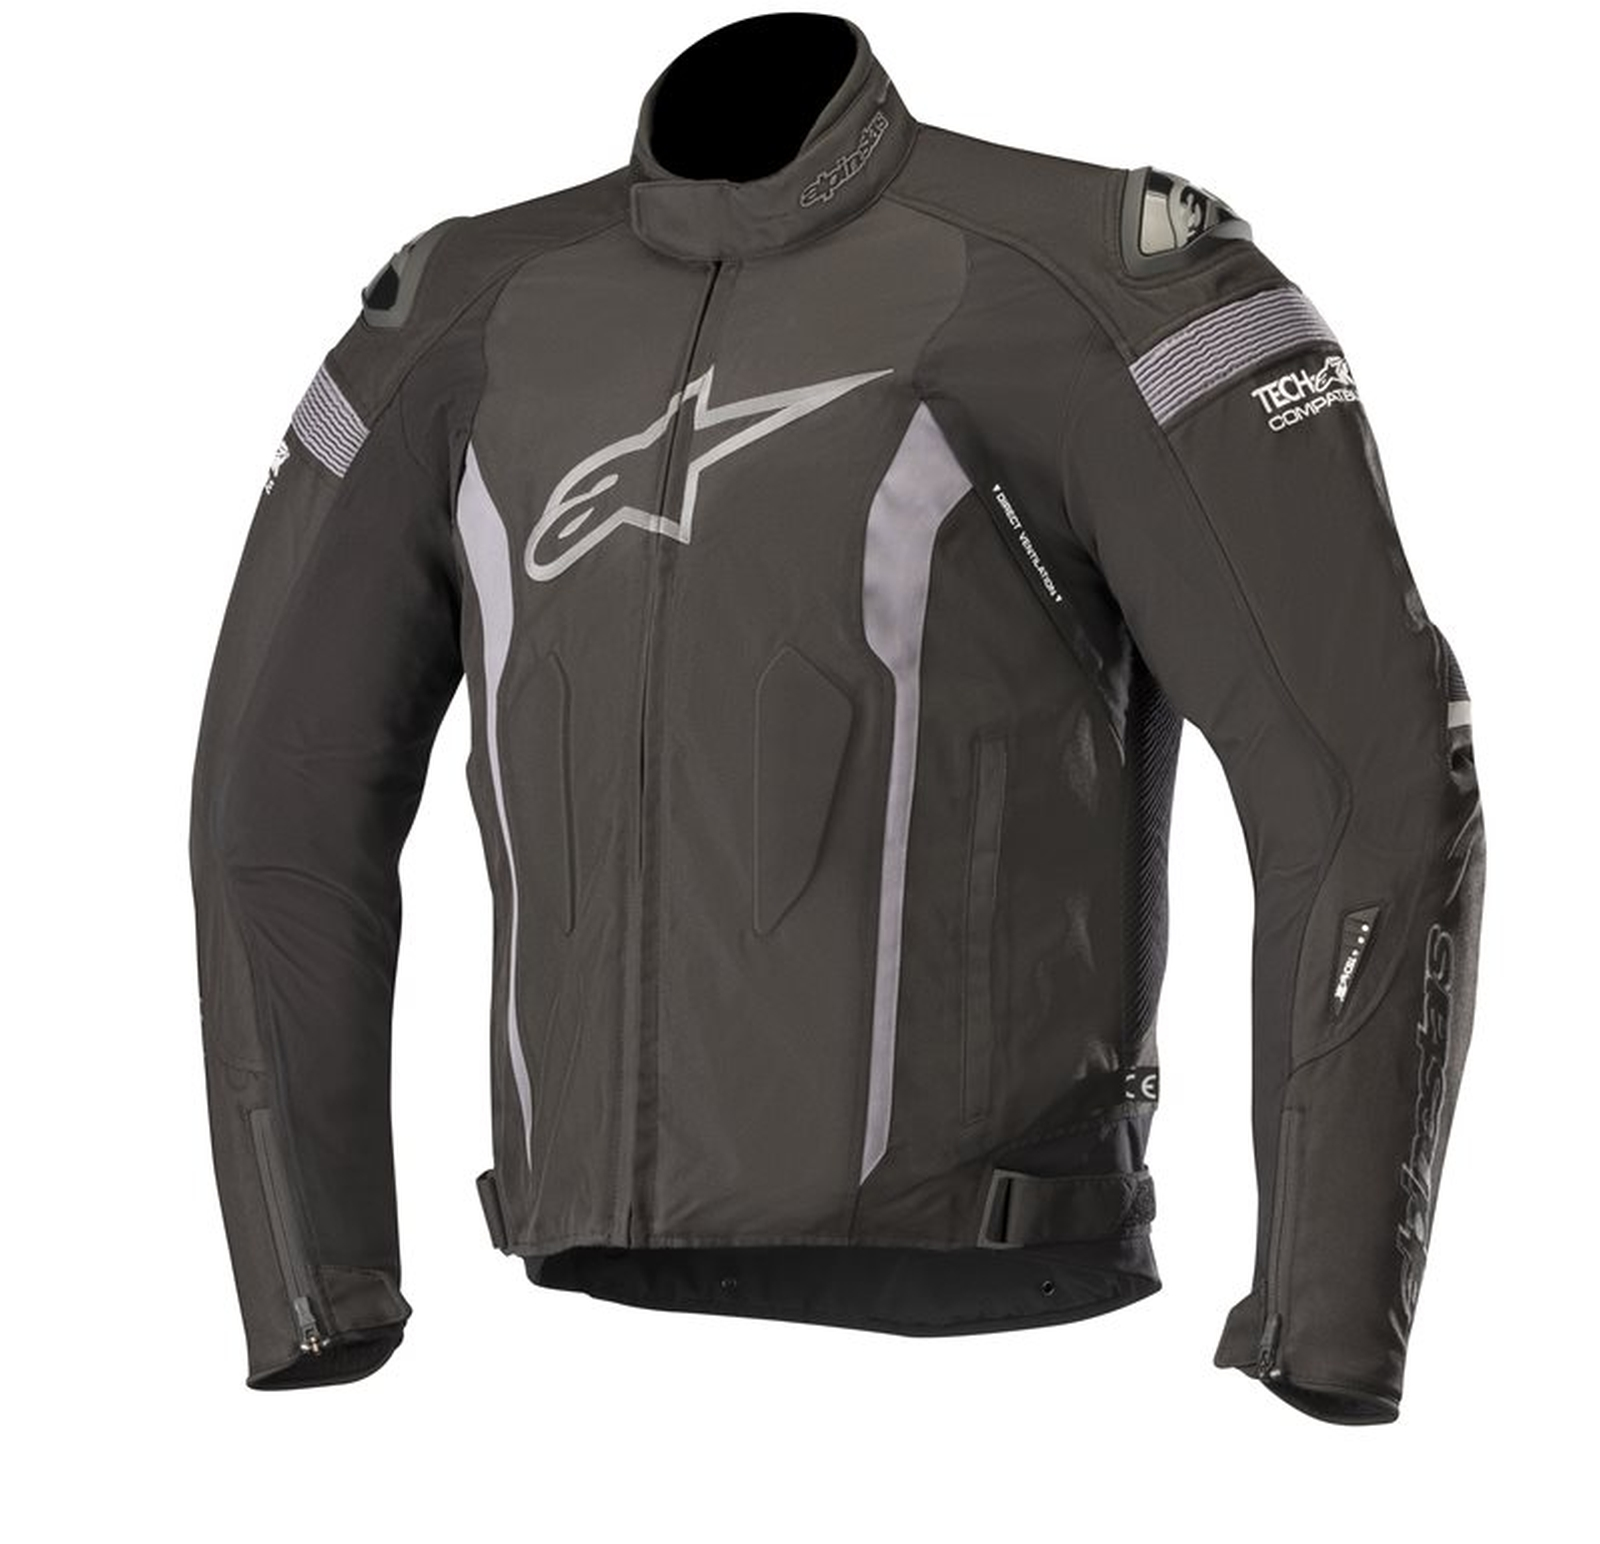 T-MISSILE DRYSTAR JACKET - TECH AIR COMPATIBLE